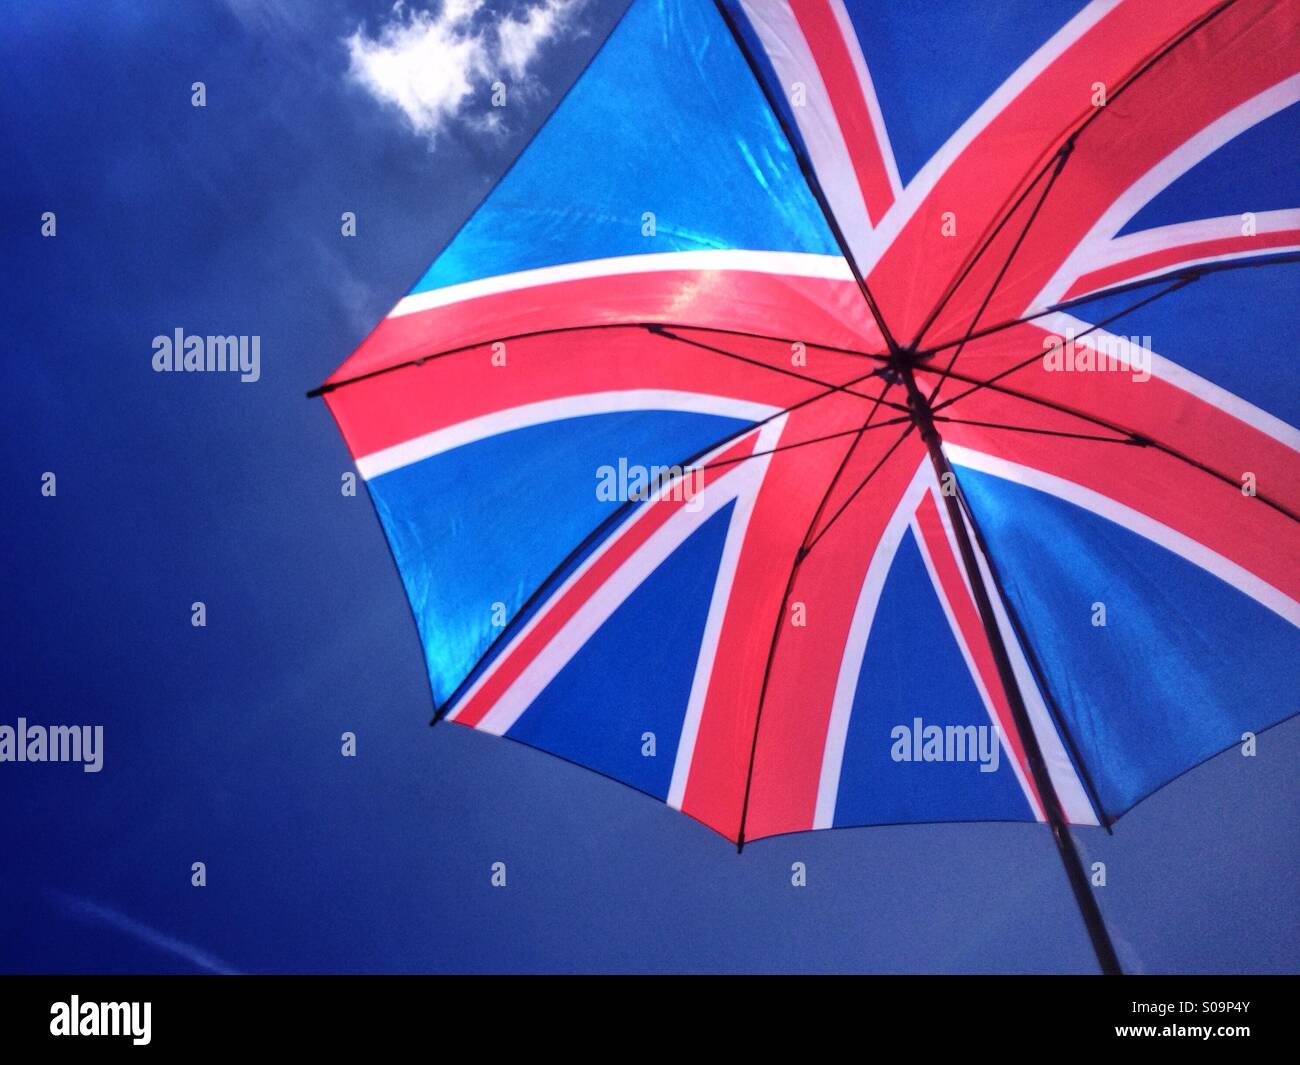 The sun shines through an umbrella with a design of the Union Flag of Great Britain, against a bright blue sky on - Stock Image